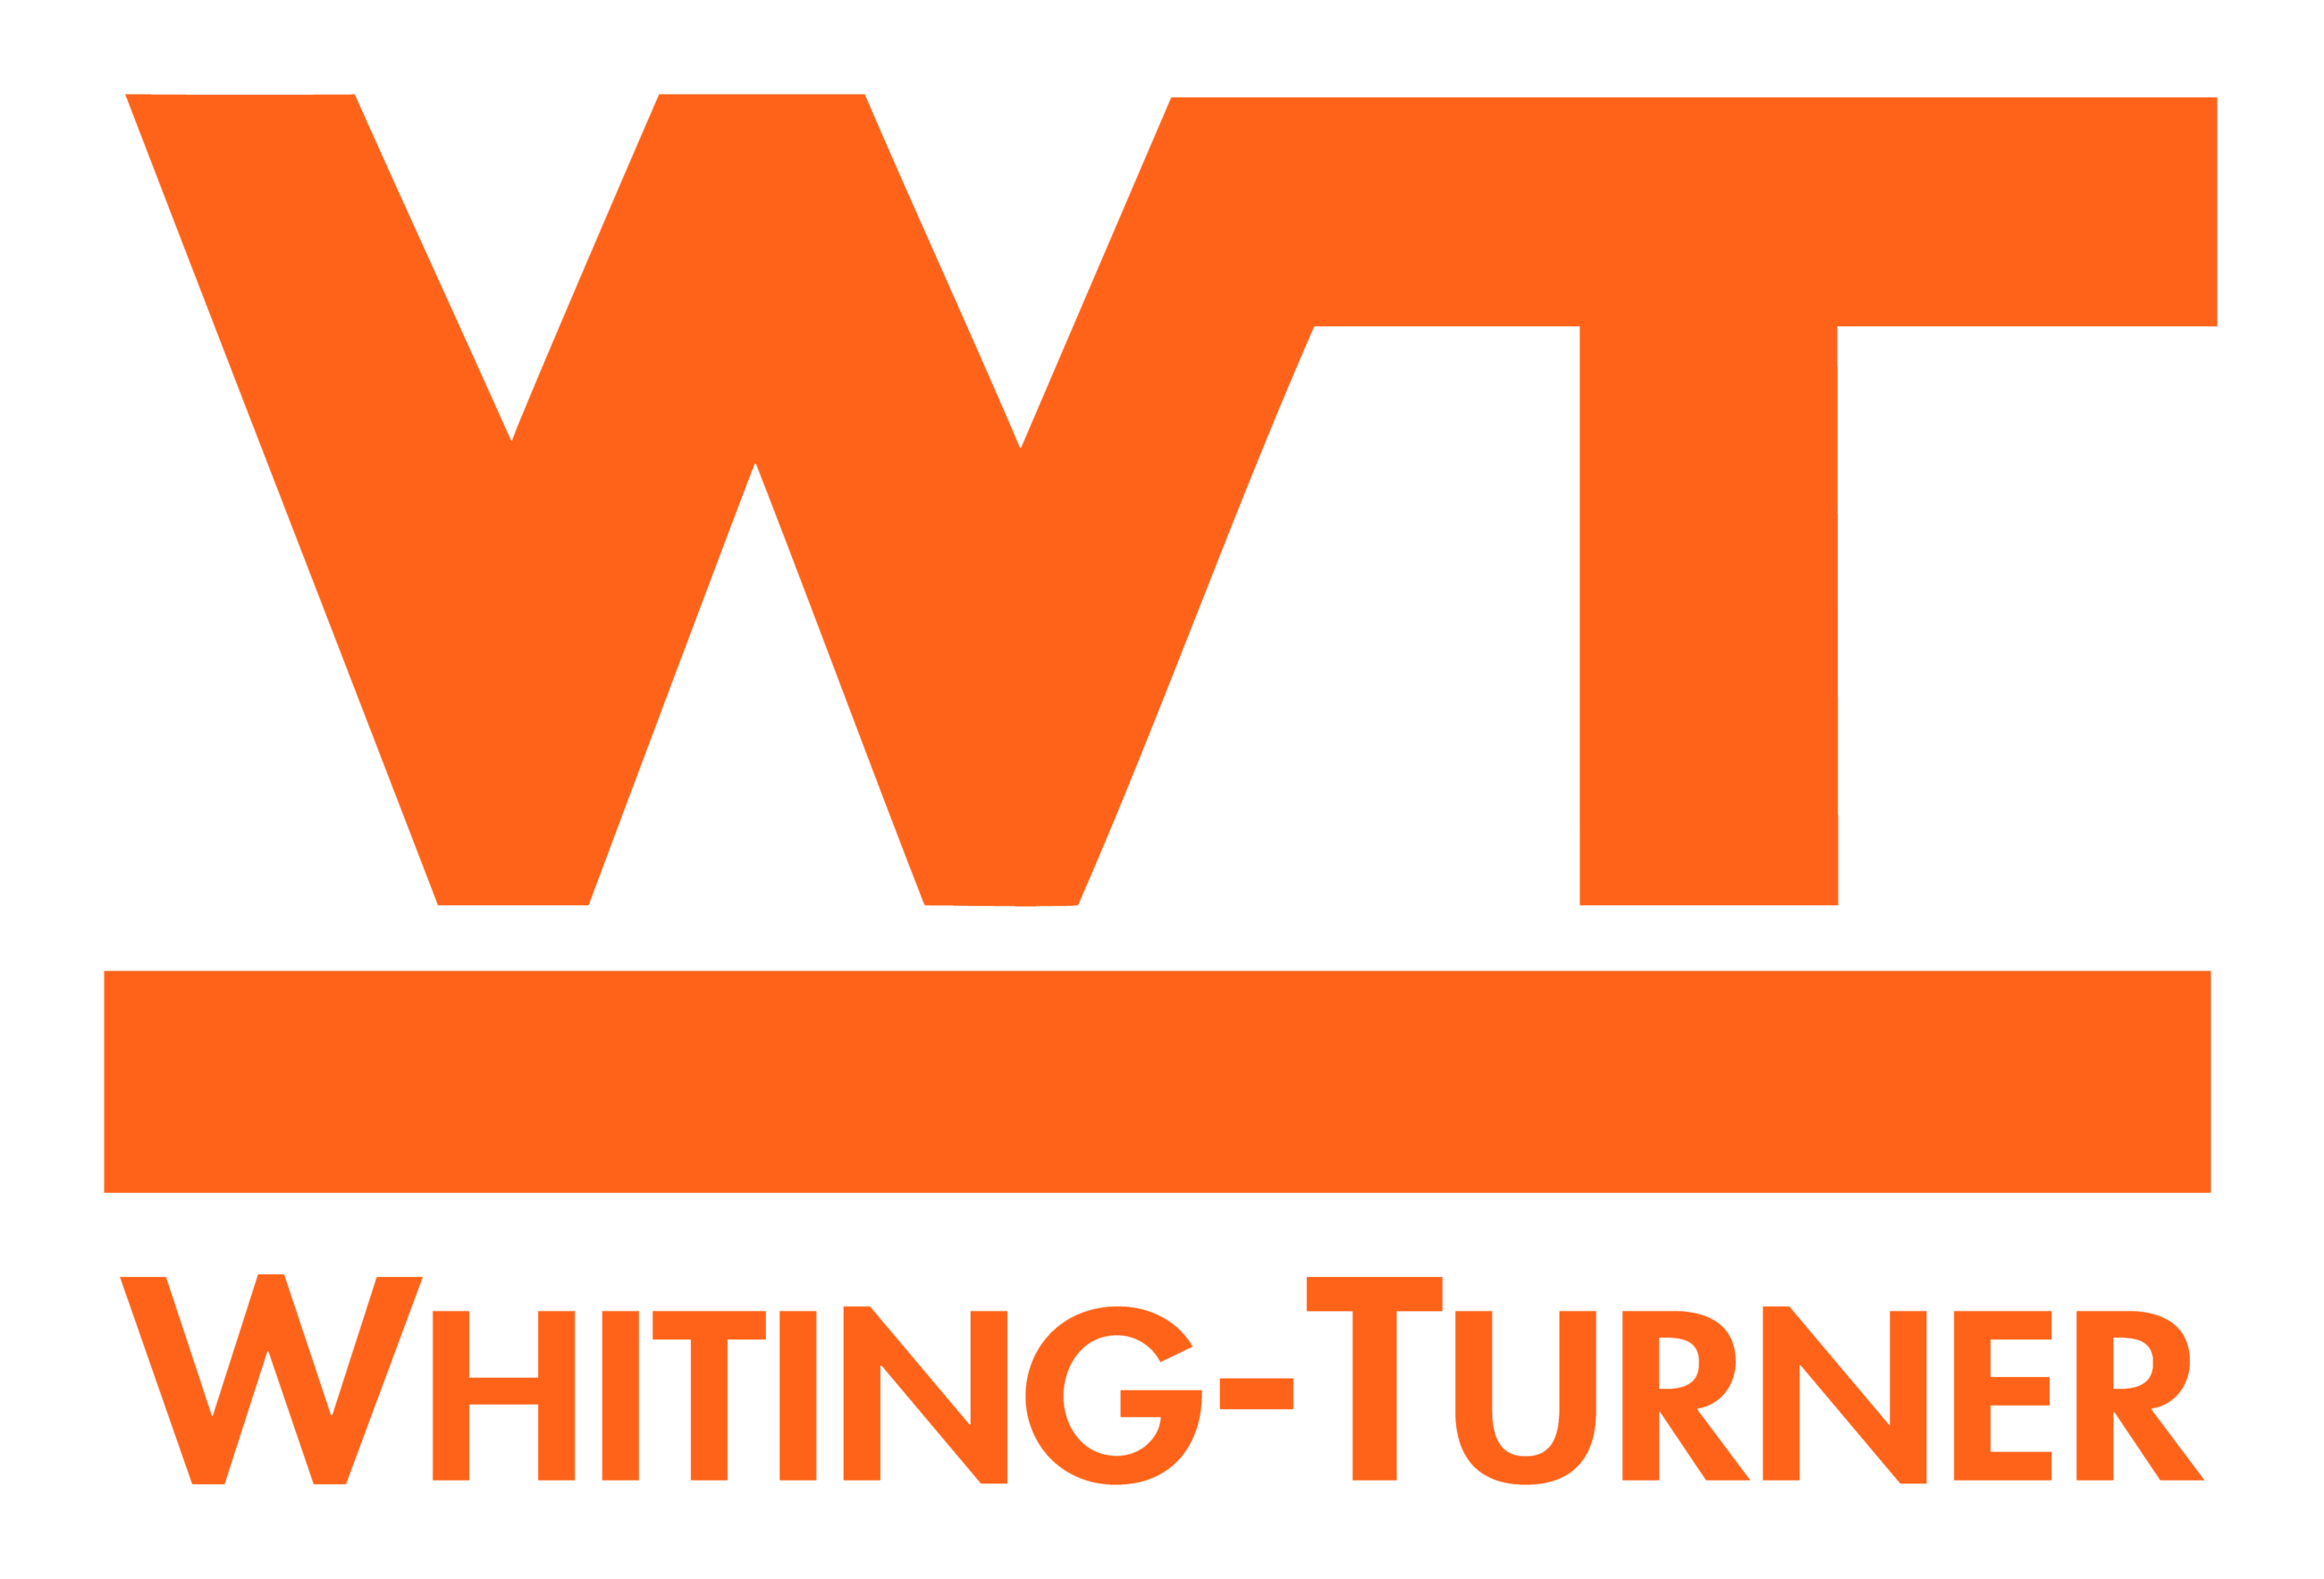 Whiting Turner Logo